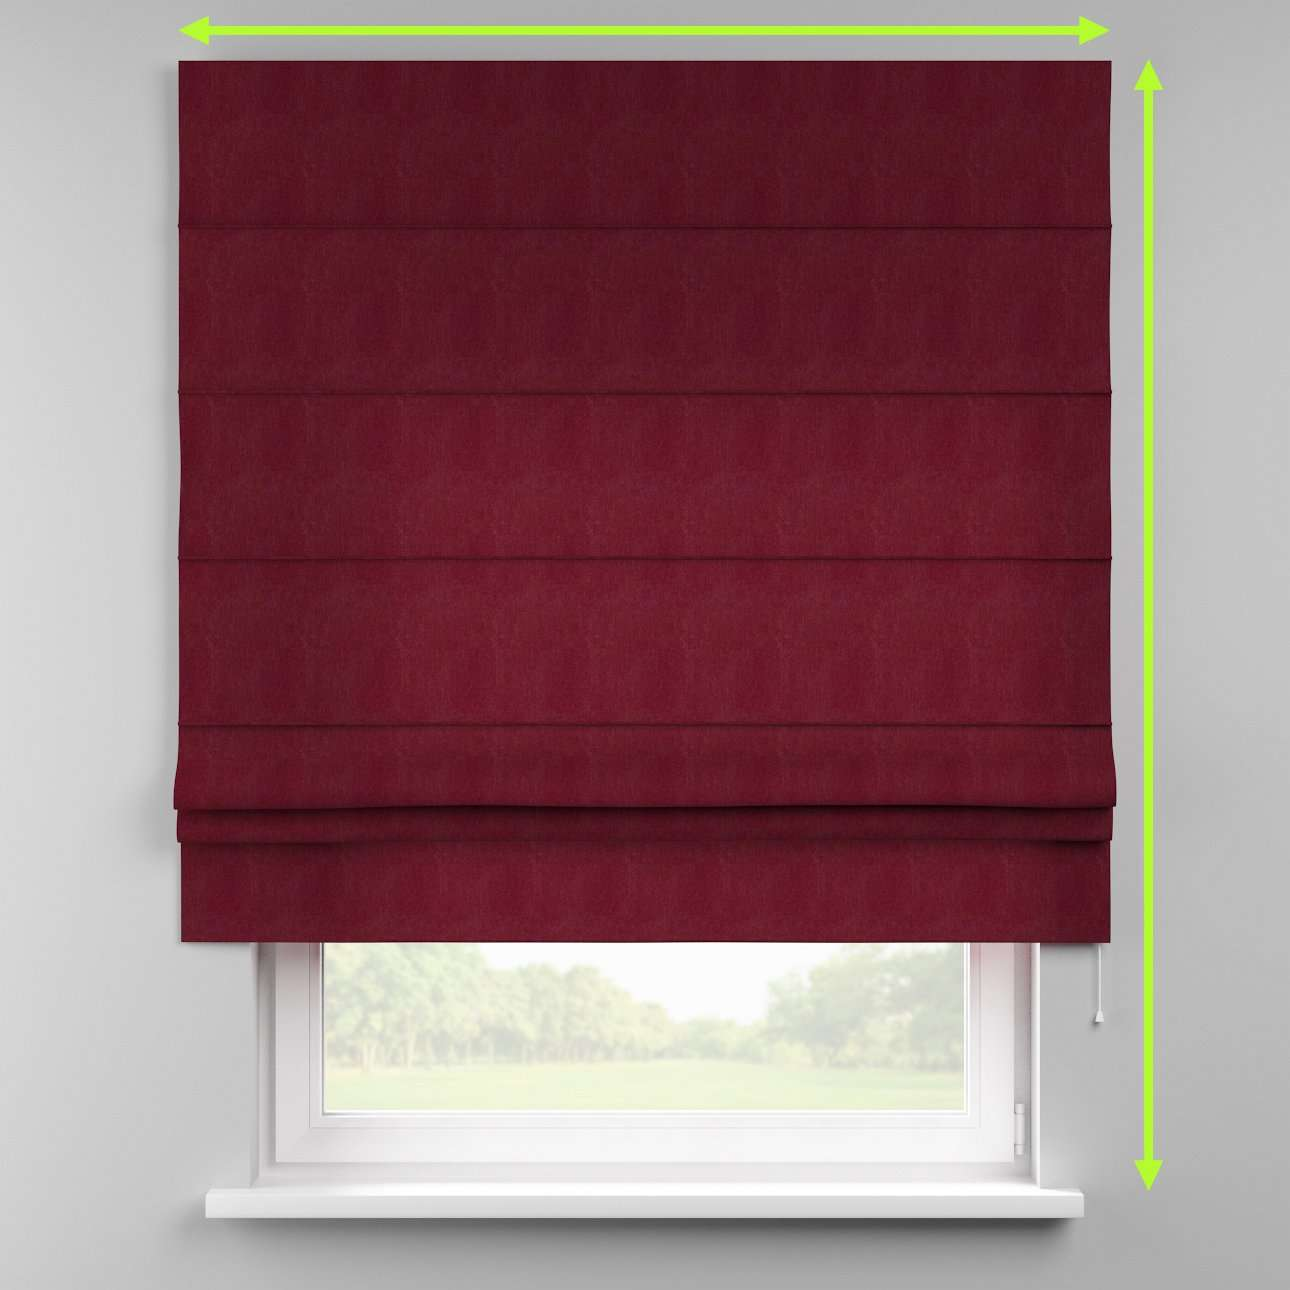 Padva roman blind  in collection Chenille, fabric: 702-19